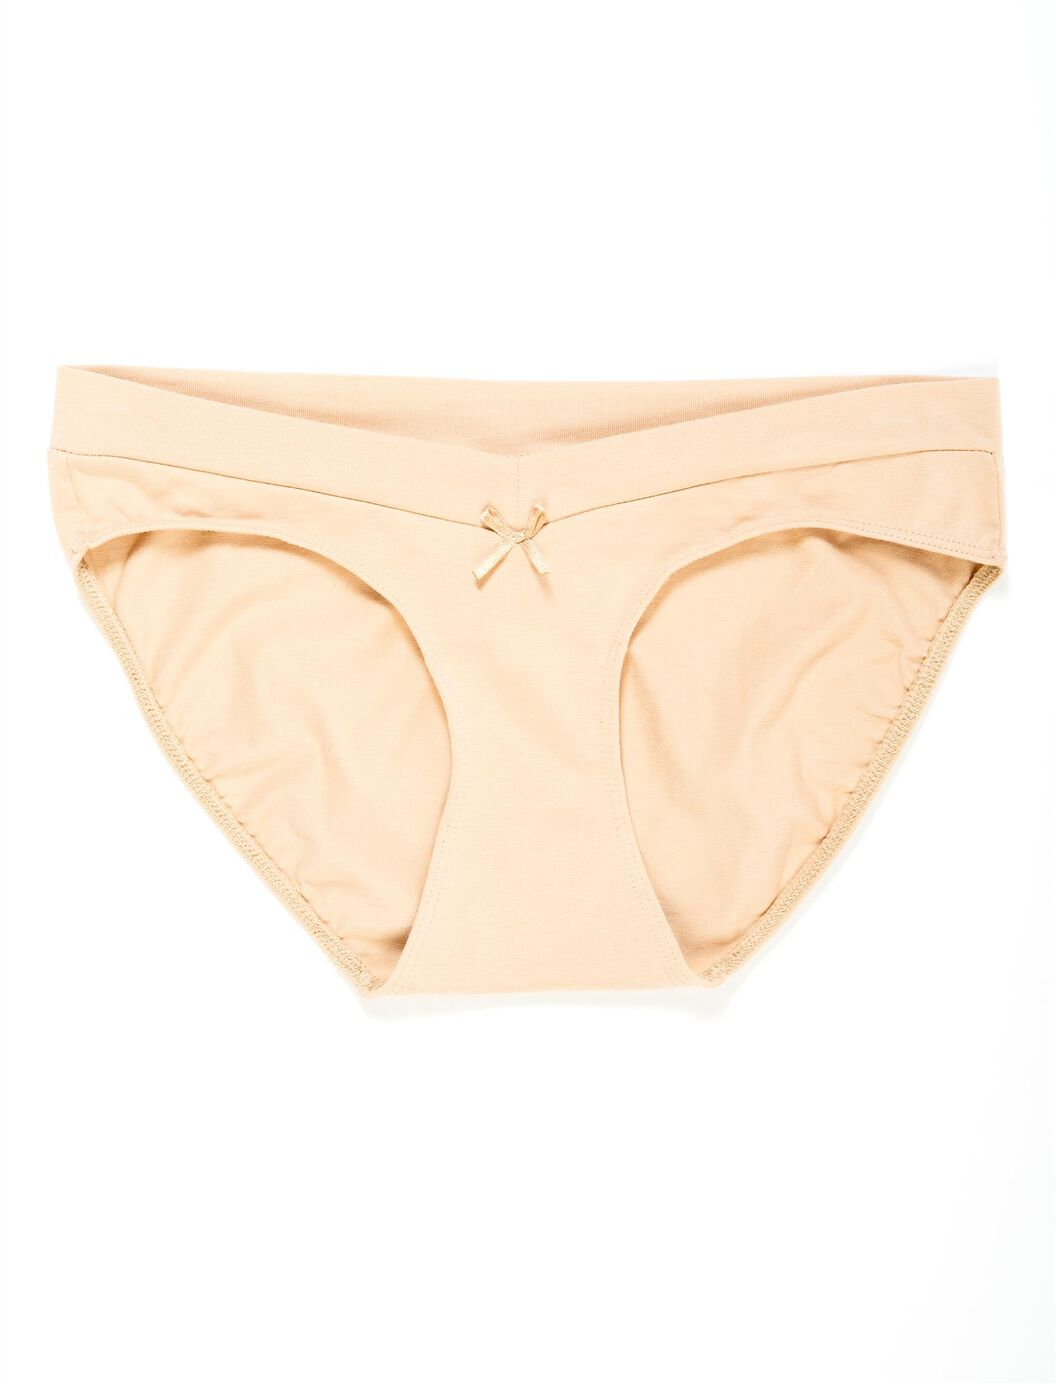 Bow Detail Hipster Maternity Panty (single) at Motherhood Maternity in Victor, NY | Tuggl